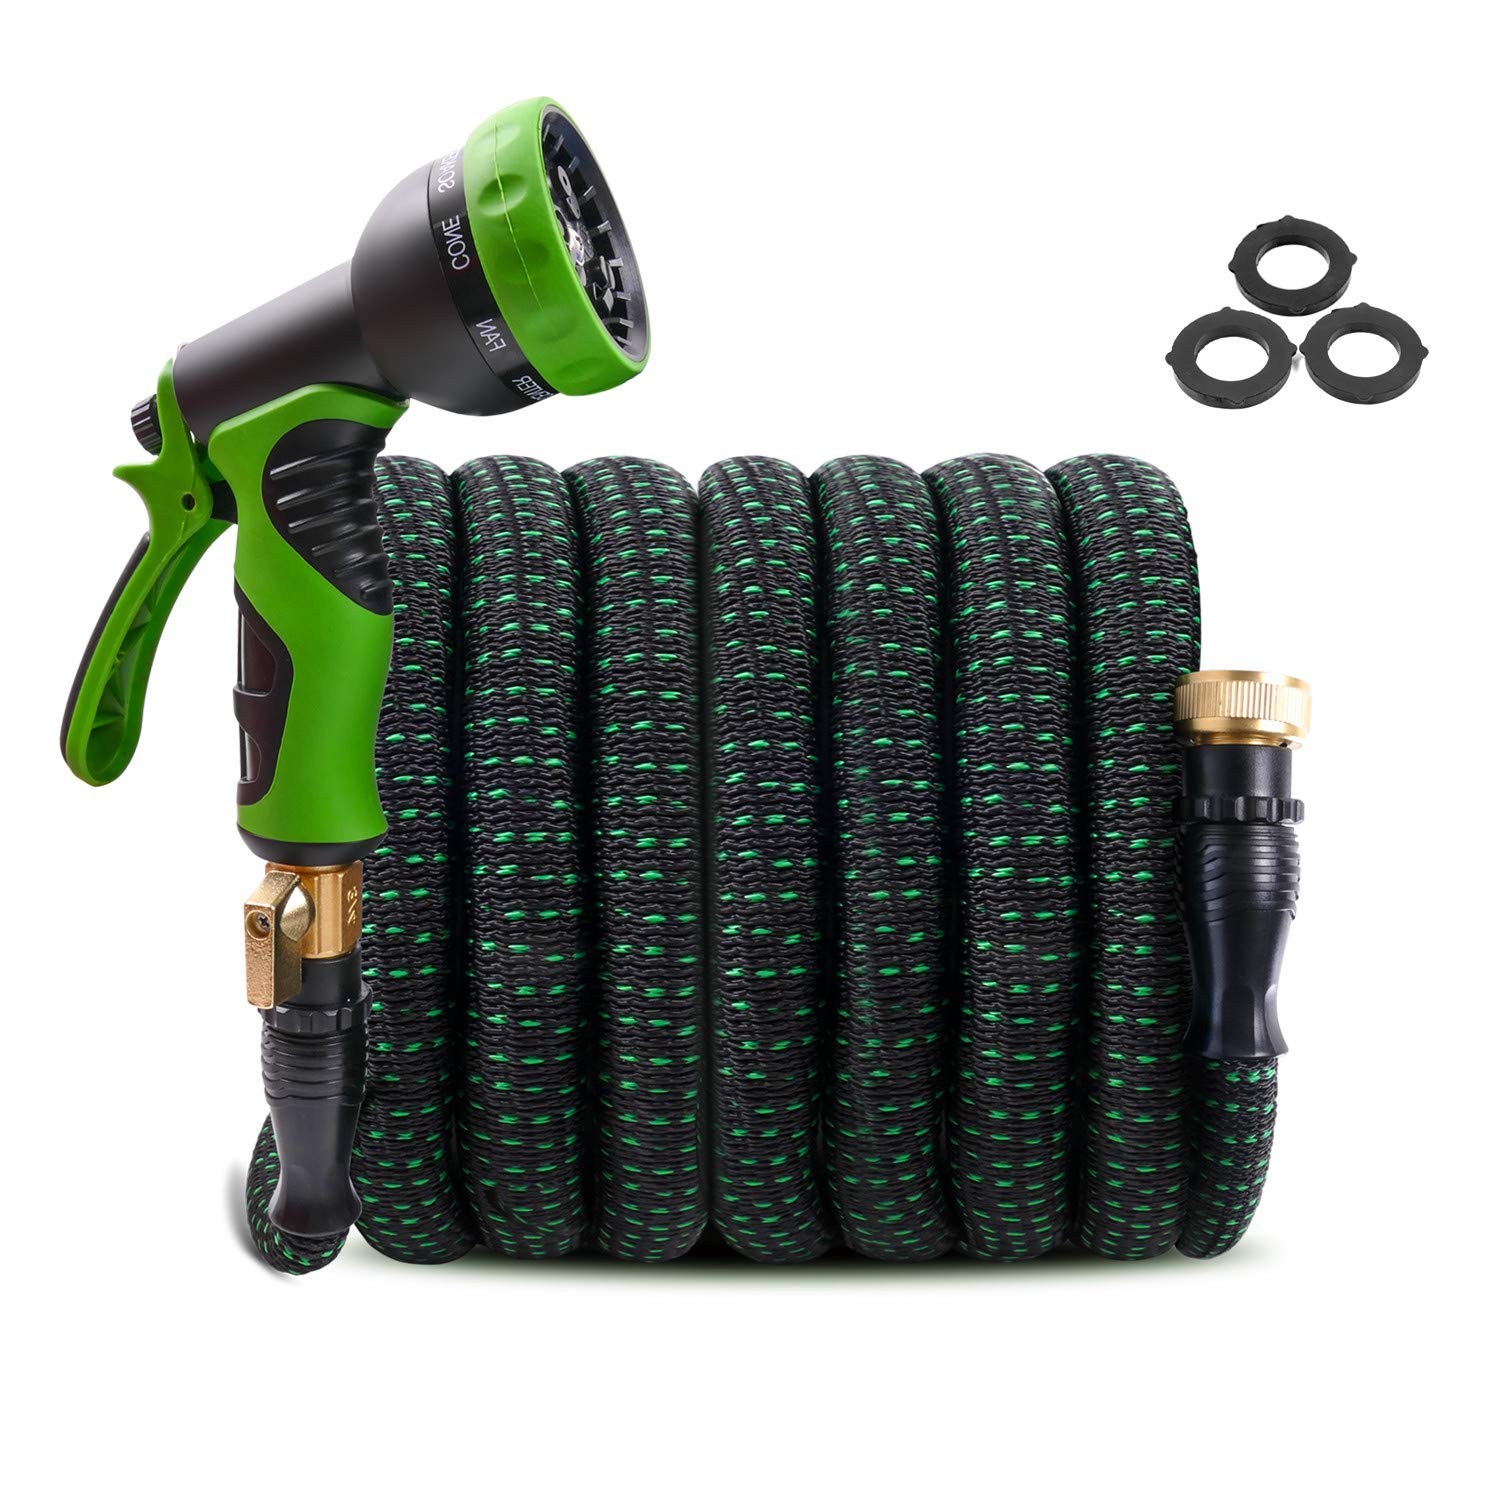 "Upgraded Expandable Garden Hose 100ft Retractable Water Hose, Flexible Garden Hose, Durable 4 Layer Latex, 3/4"" Solid Brass Connectors with 9 Modes Spray Nozzle, Ideal Choice for Watering and Washing"